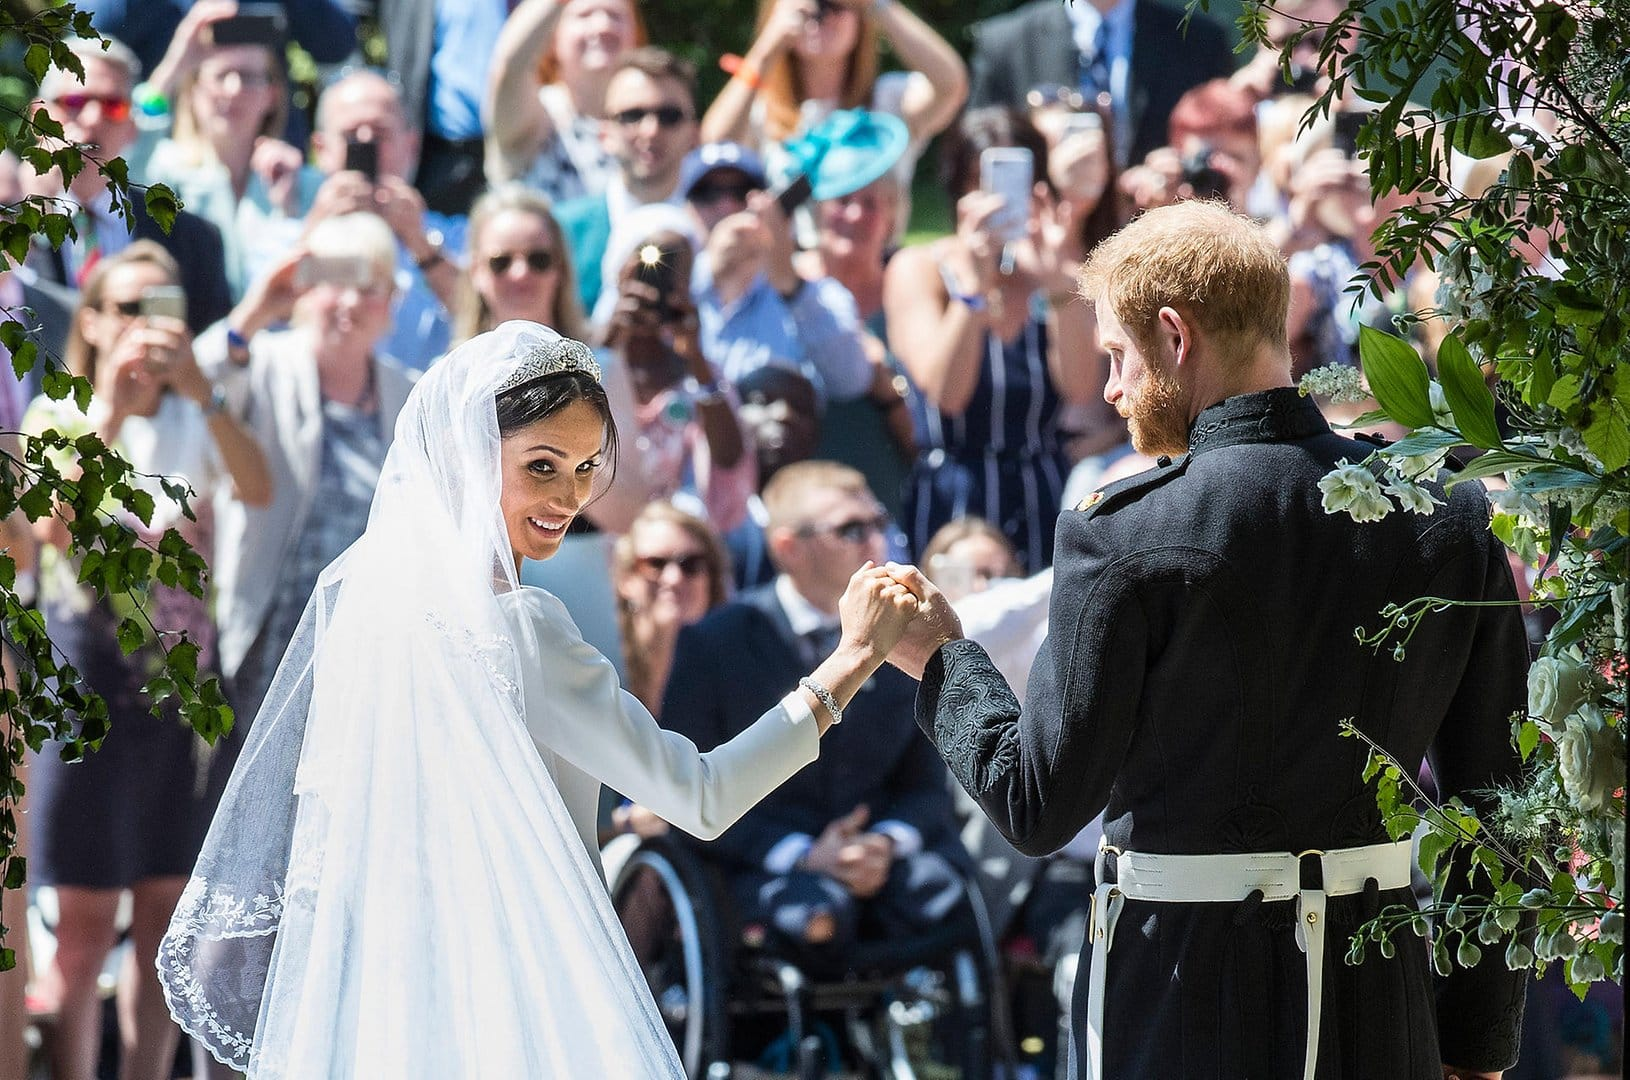 Hochzeitsstrauß Meghan Markle Meghan Markle Wedding Dress And Veil With Symbolism